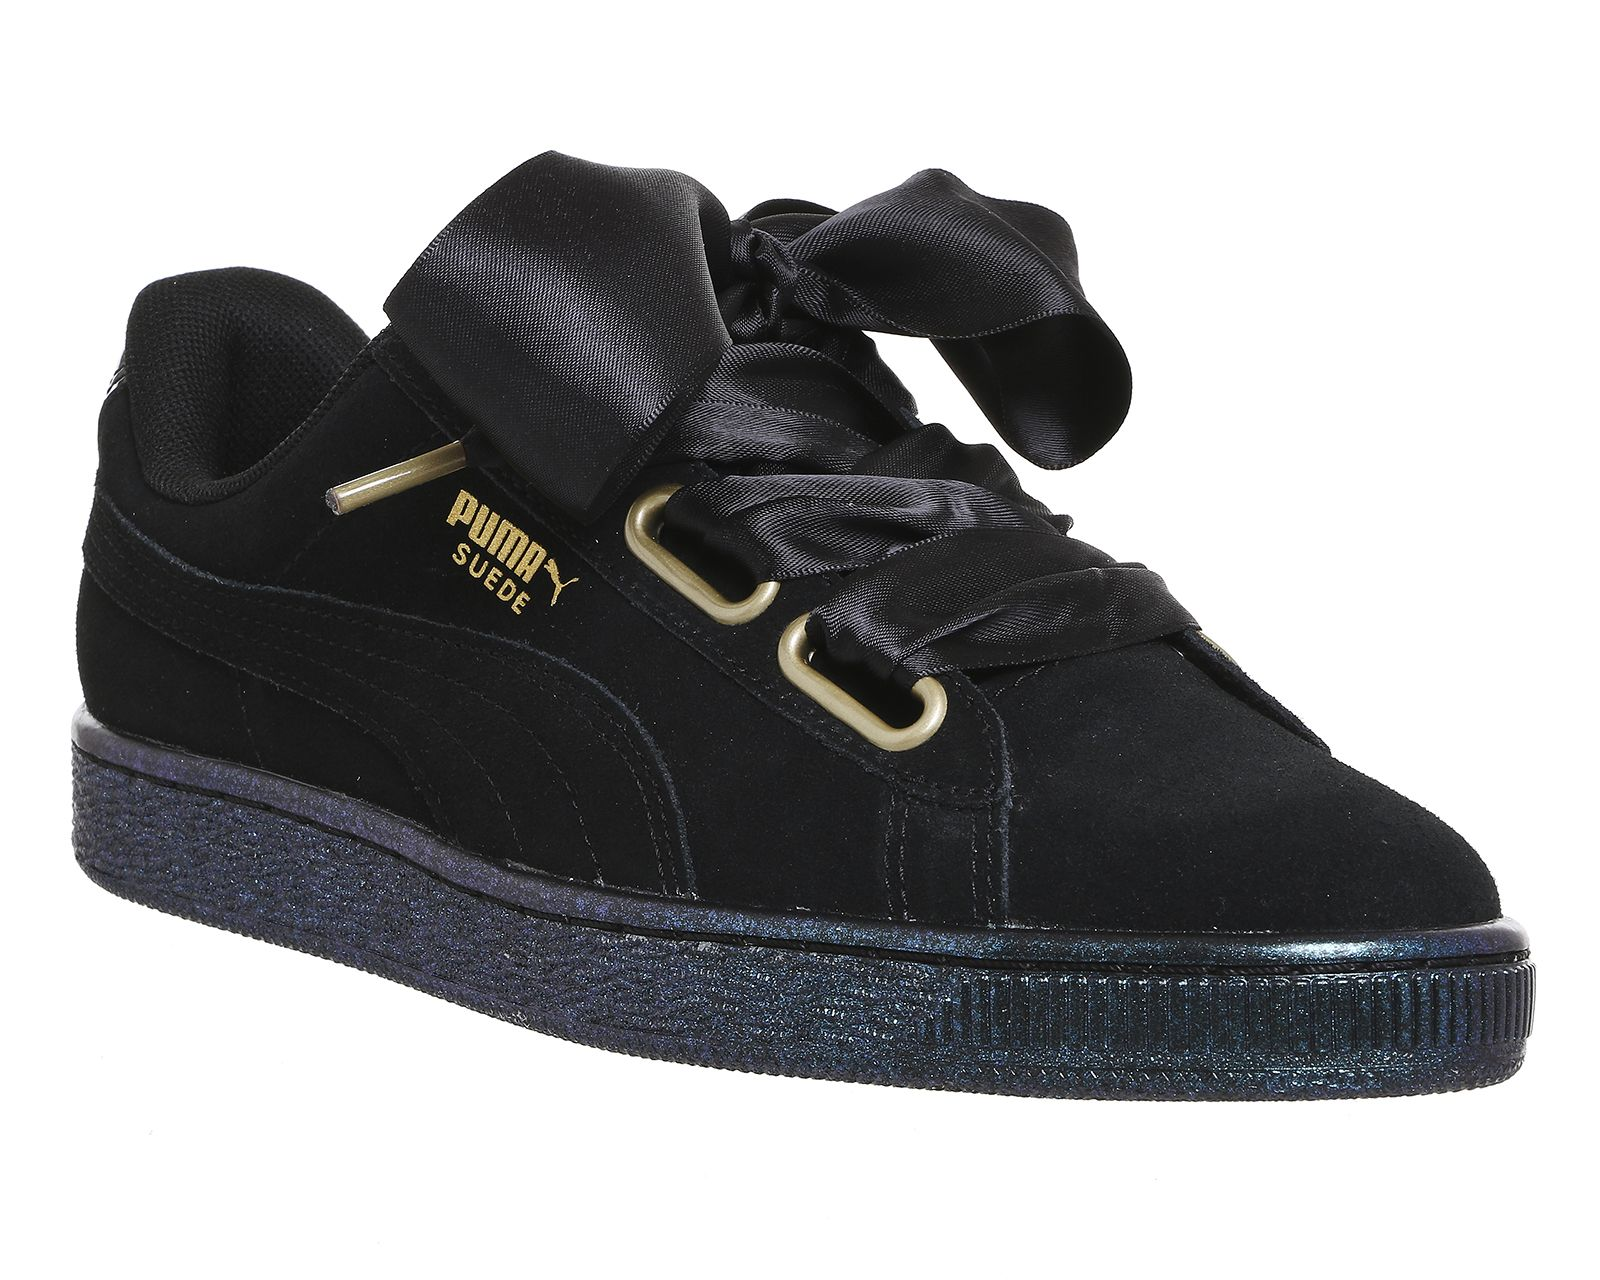 Puma Suede Heart Puma Black Satin | Must have❤️ | Puma